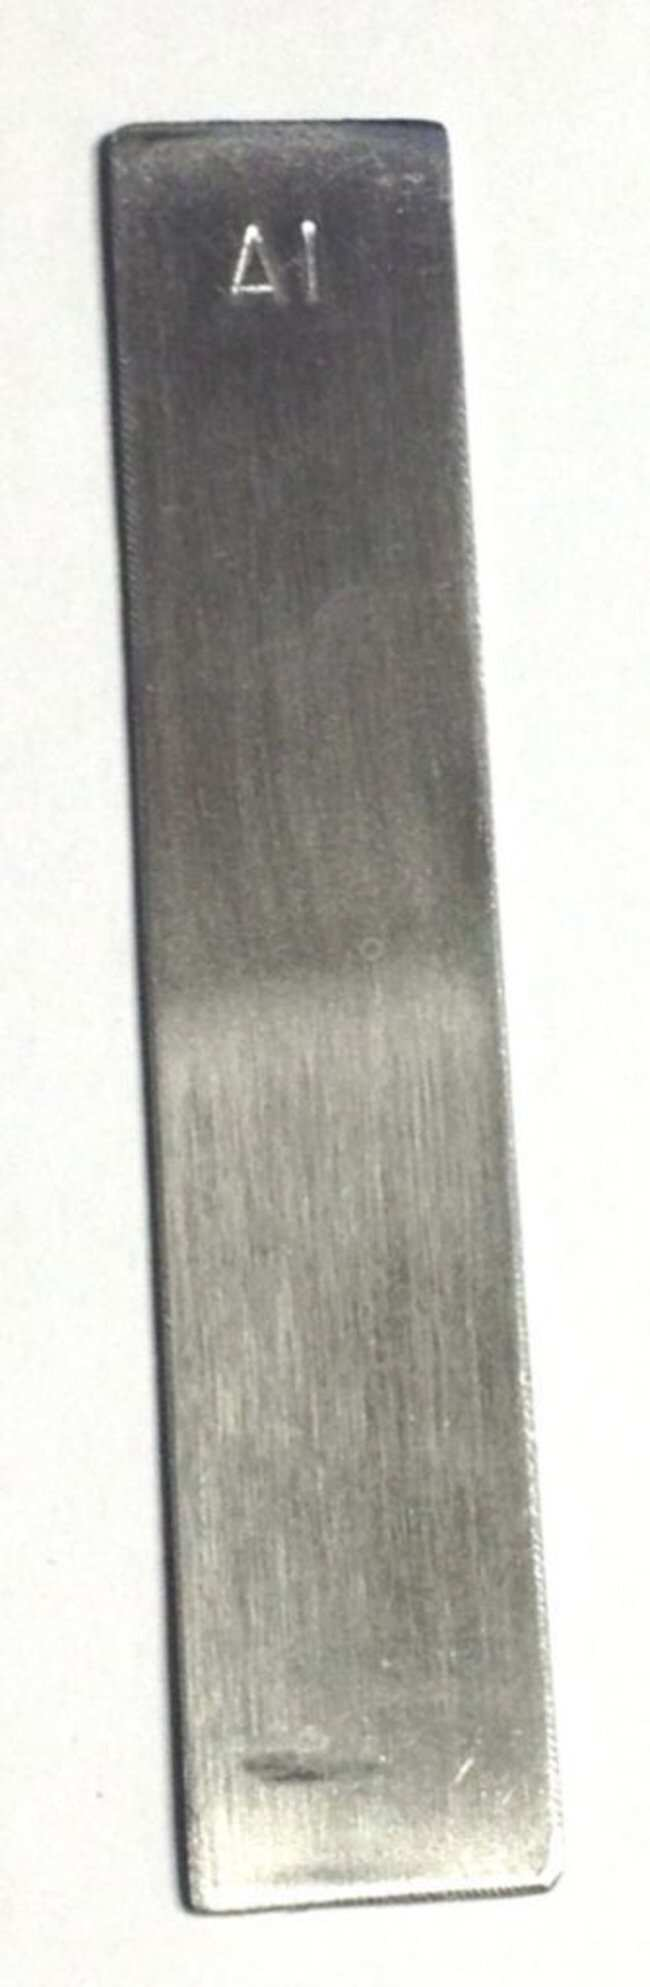 Eisco Electrodes for Student Cell  Aluminum:Teaching Supplies